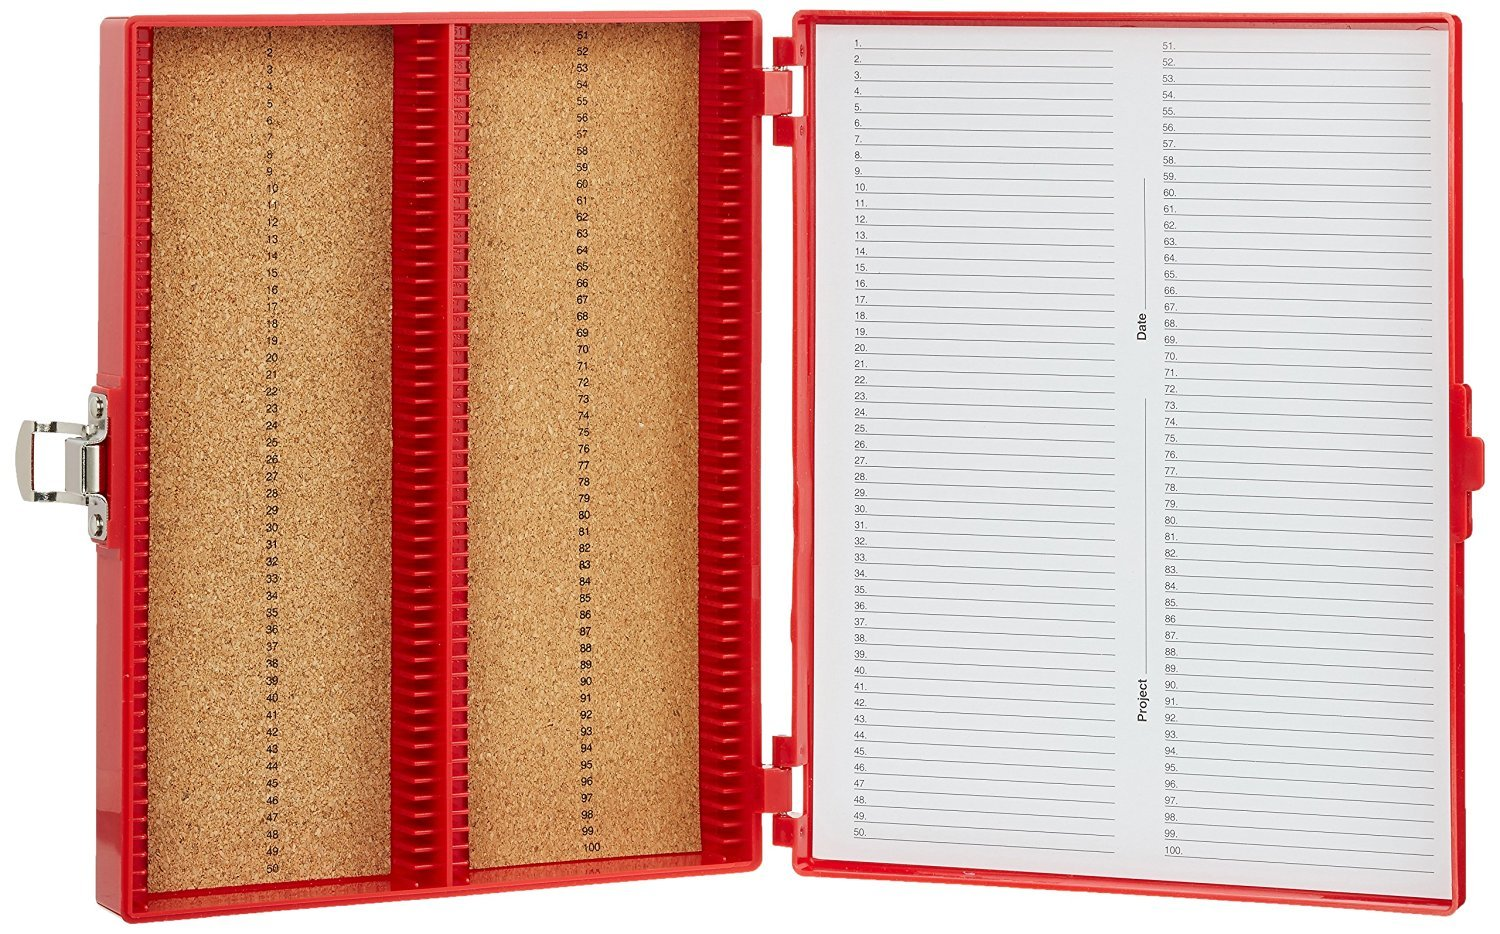 Heathrow Scientific HD15994C Microscope Slide Box, Cork Lined, 100 Place, 208 mm Length x 175 mm Width x 34 mm Height, Red HS15994C